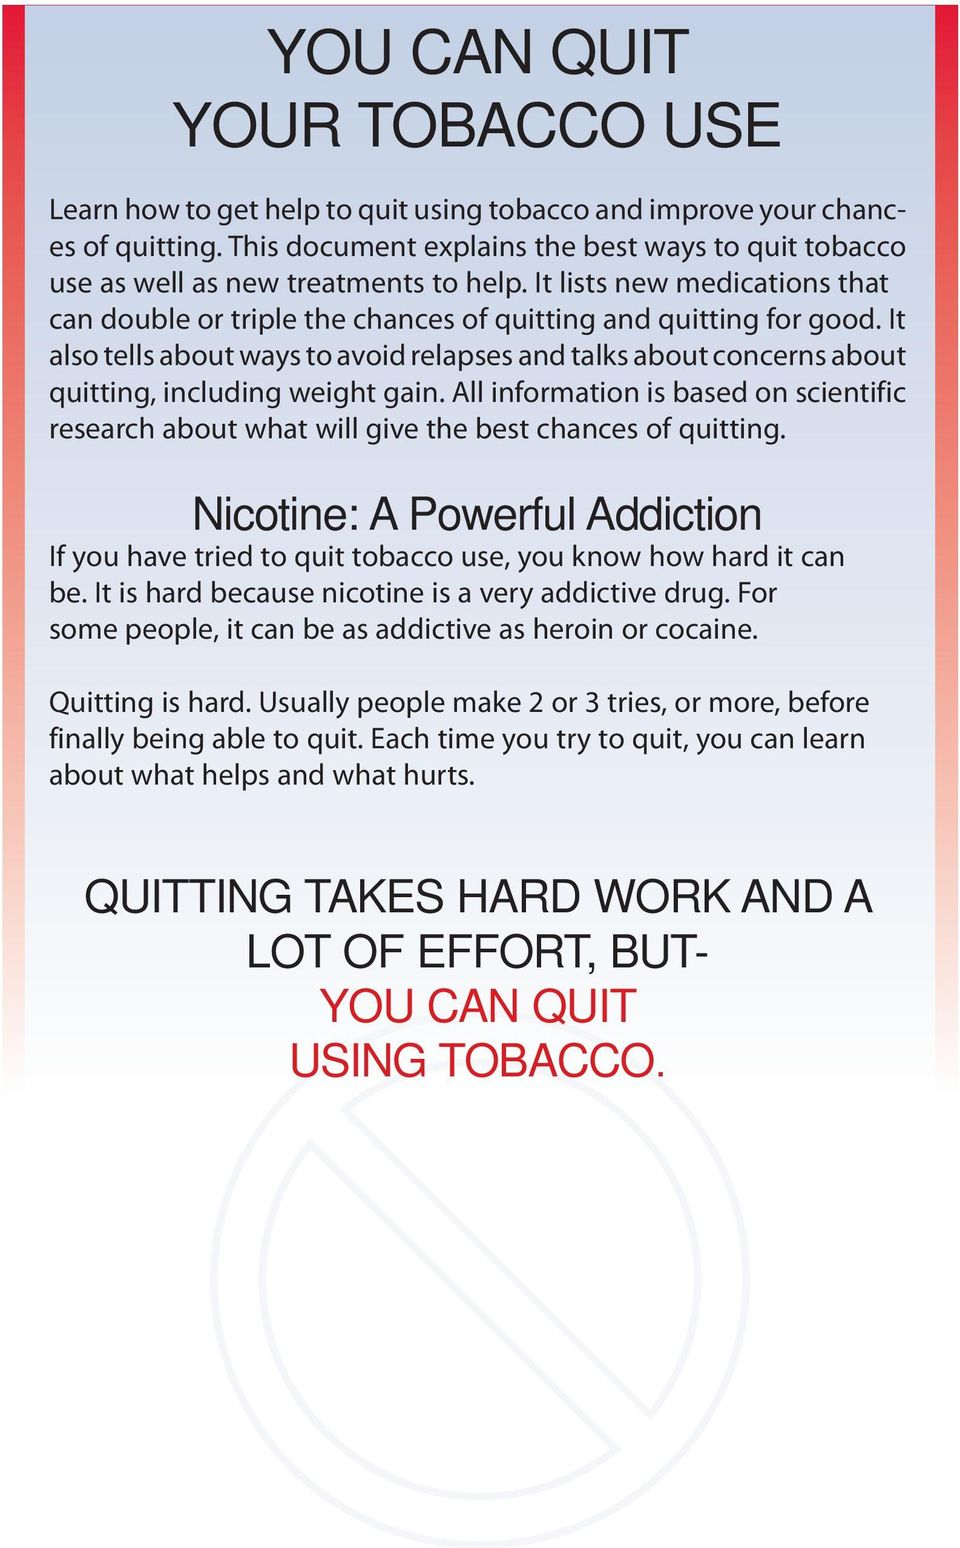 It also tells about ways to avoid relapses and talks about concerns about quitting, including weight gain.